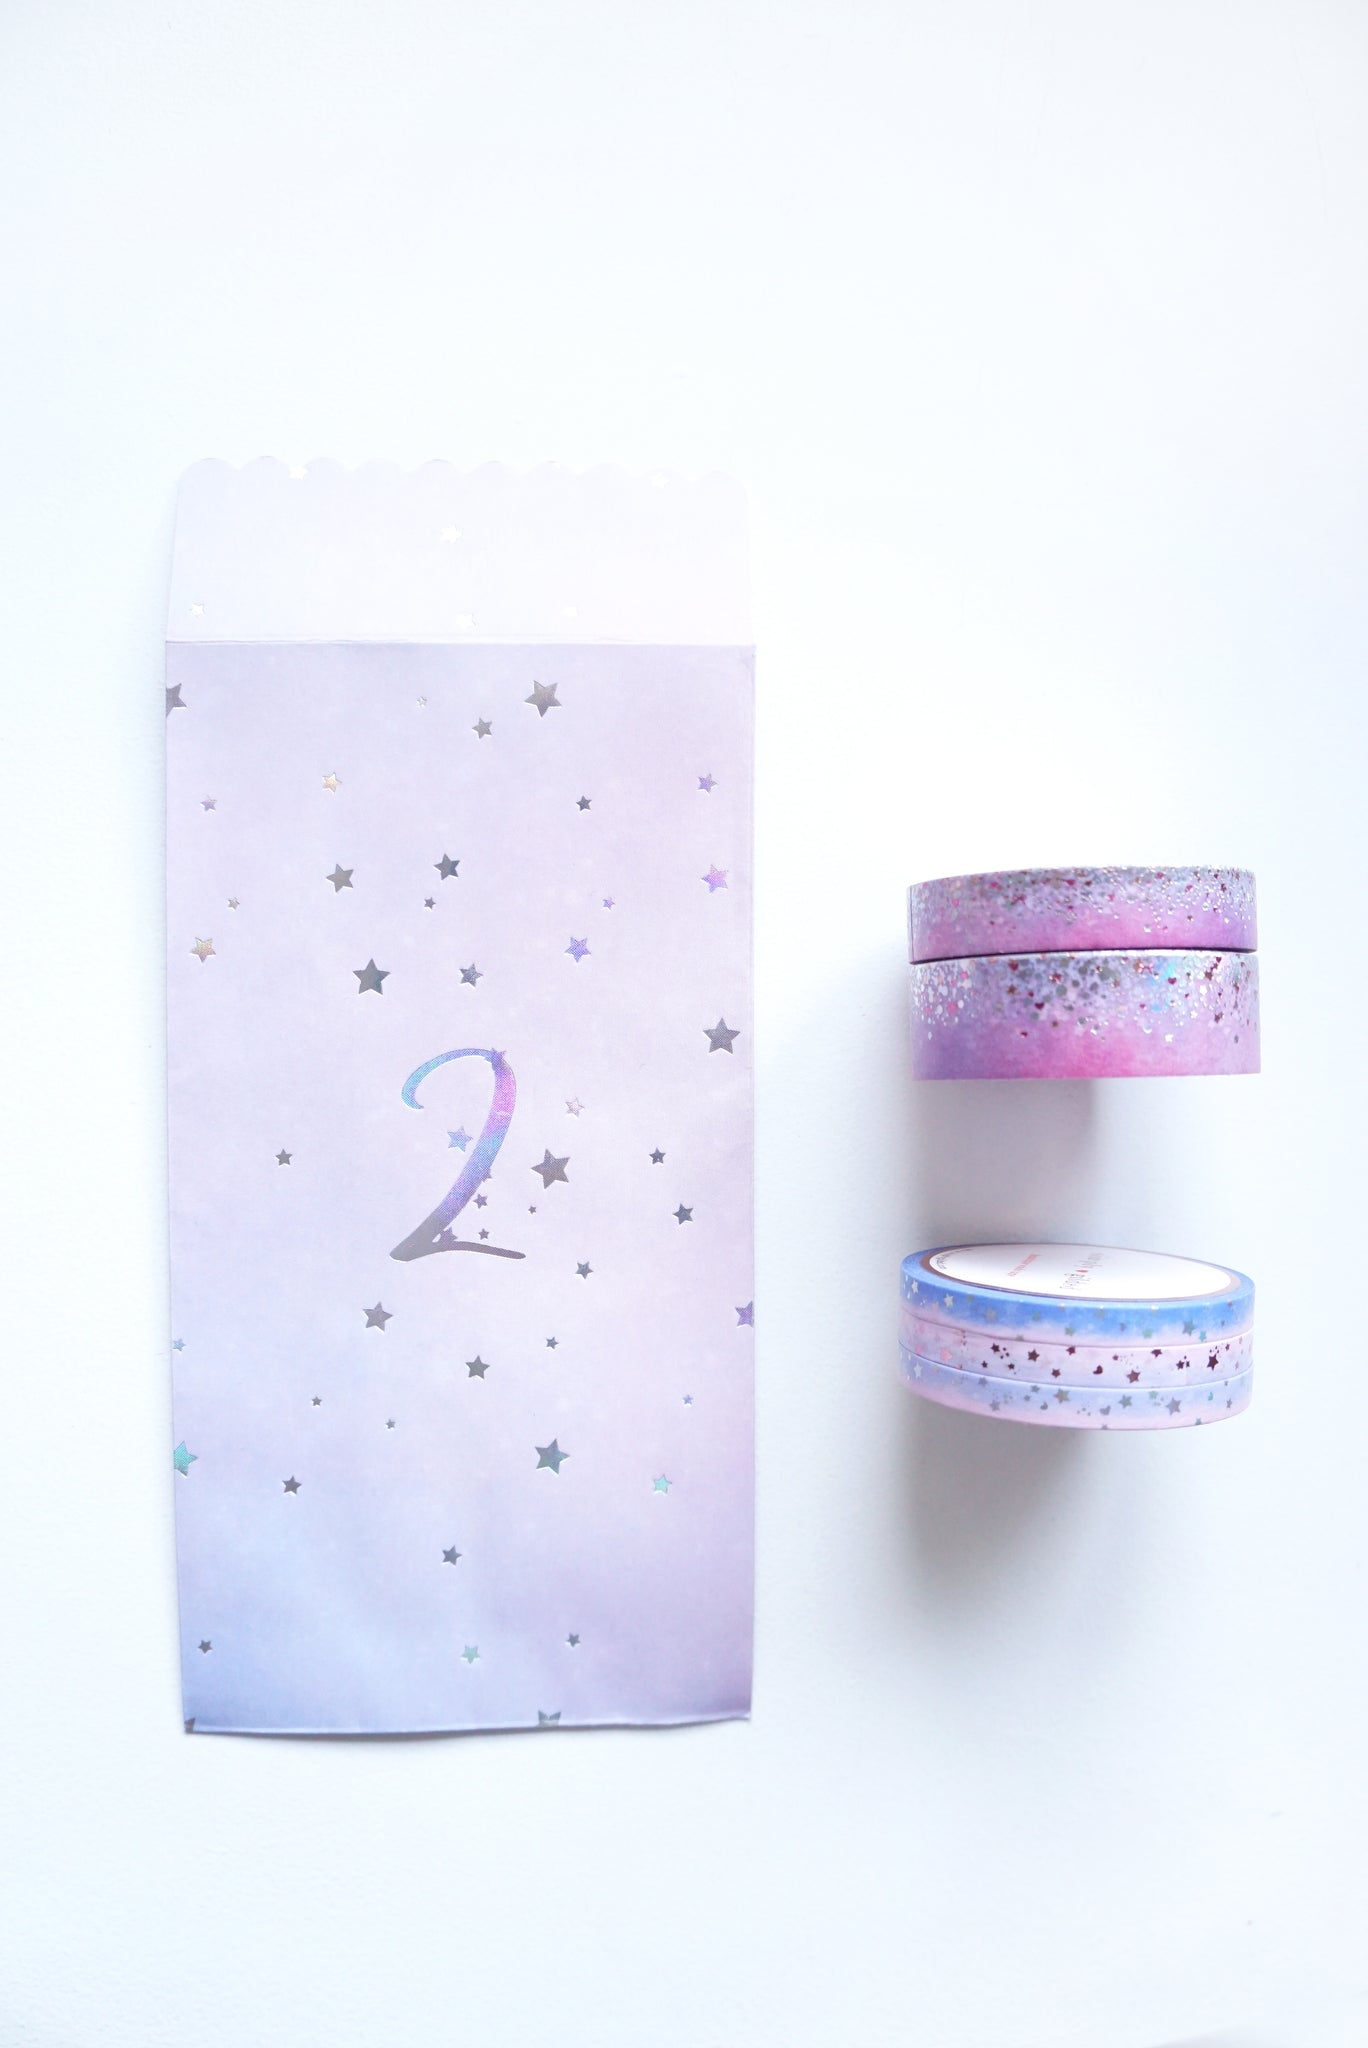 WASHI TAPE 15/10/5mm x 3 set of 3 - LOVE STARDUST & 5mm ombre shooting star + silver holographic/rose gold/pink foils 2019 12 days box/D2 (January 31 Mini Release)